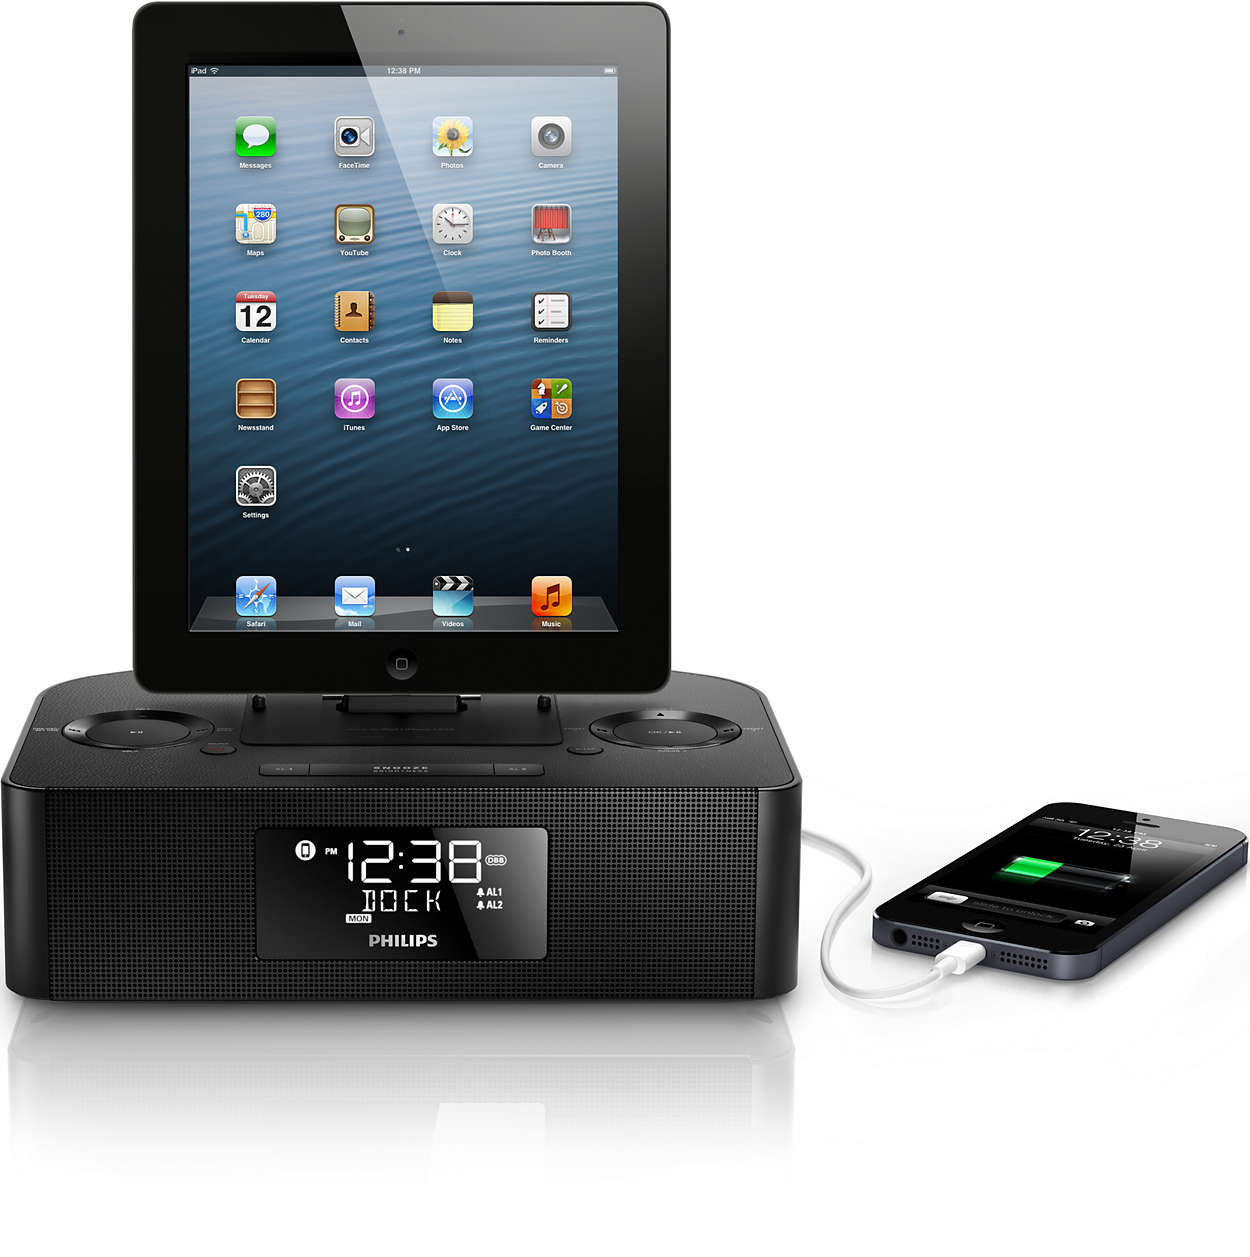 docking station for ipod iphone ipad aj7050d 05 philips. Black Bedroom Furniture Sets. Home Design Ideas